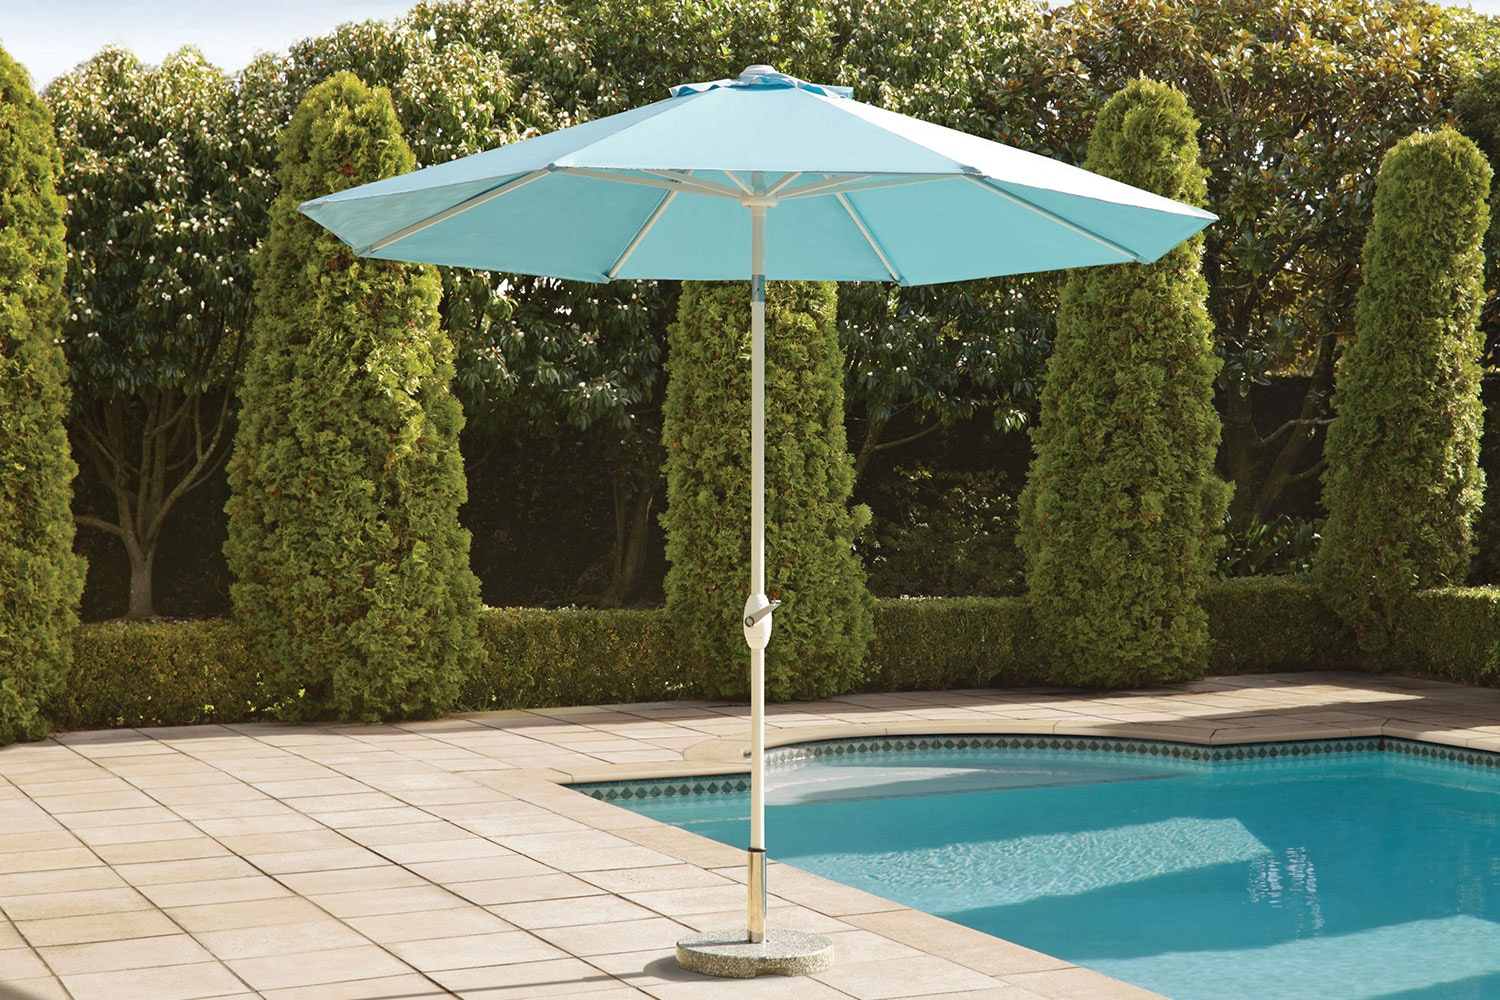 Florida Blue 2.7m Outdoor Umbrella by Peros